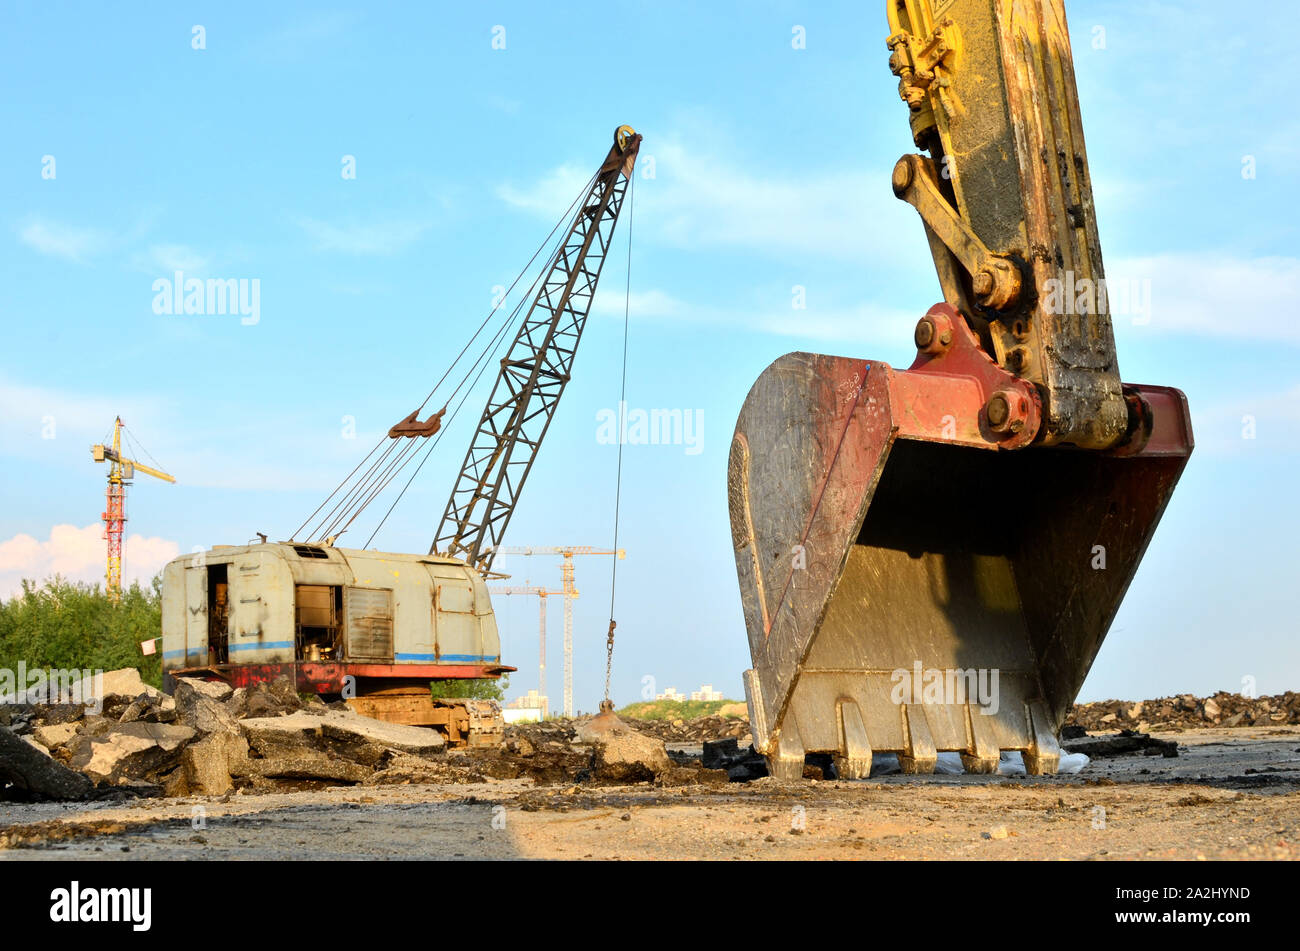 Excavator bucket on the construction site at sunset background and of the blue sky. Land Clearing, grading, pool excavation, utility trenching, utilit Stock Photo